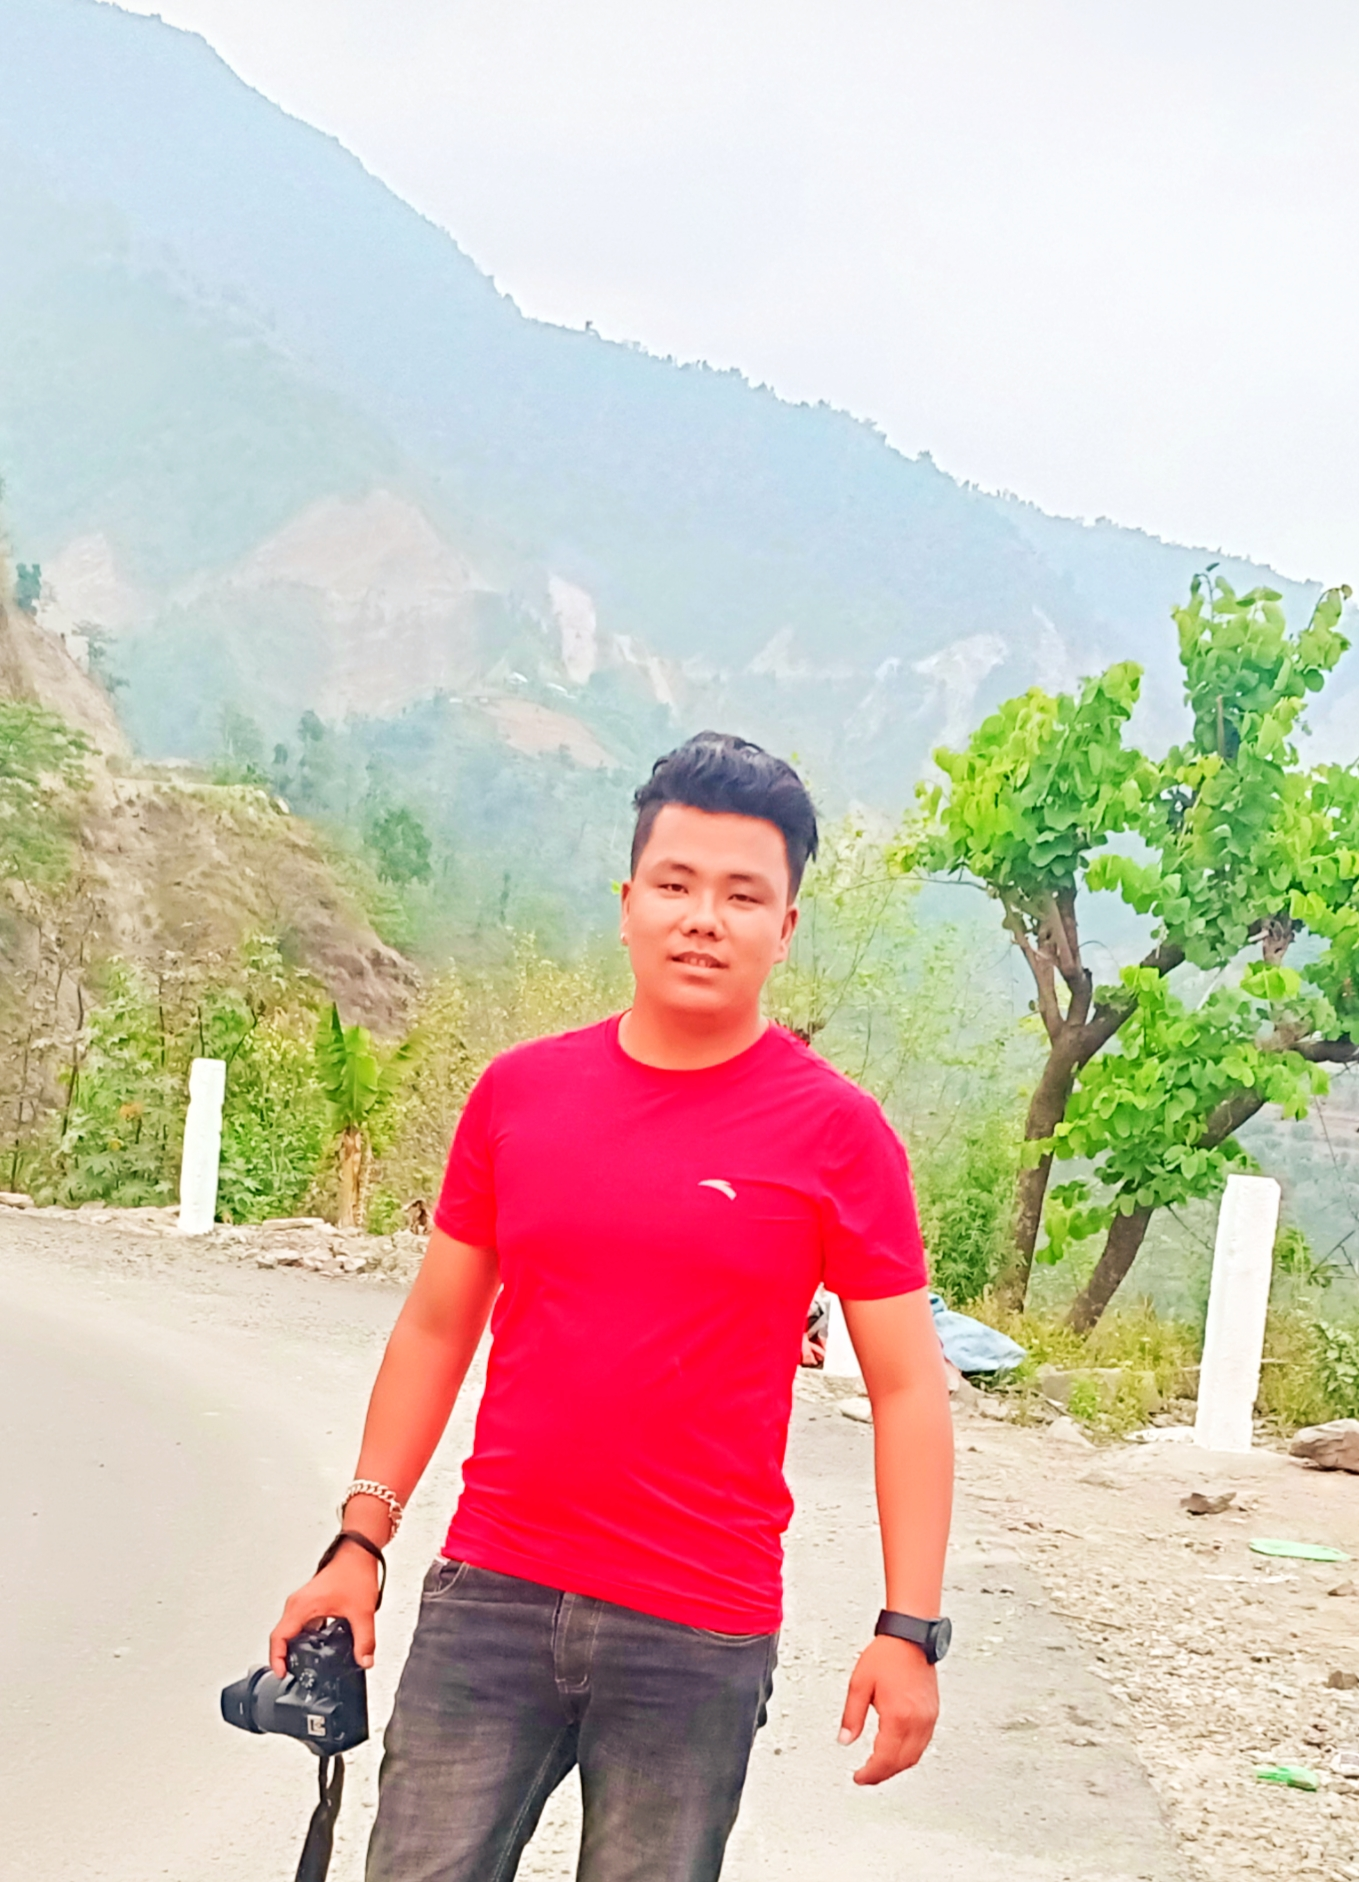 Abiral Ghising